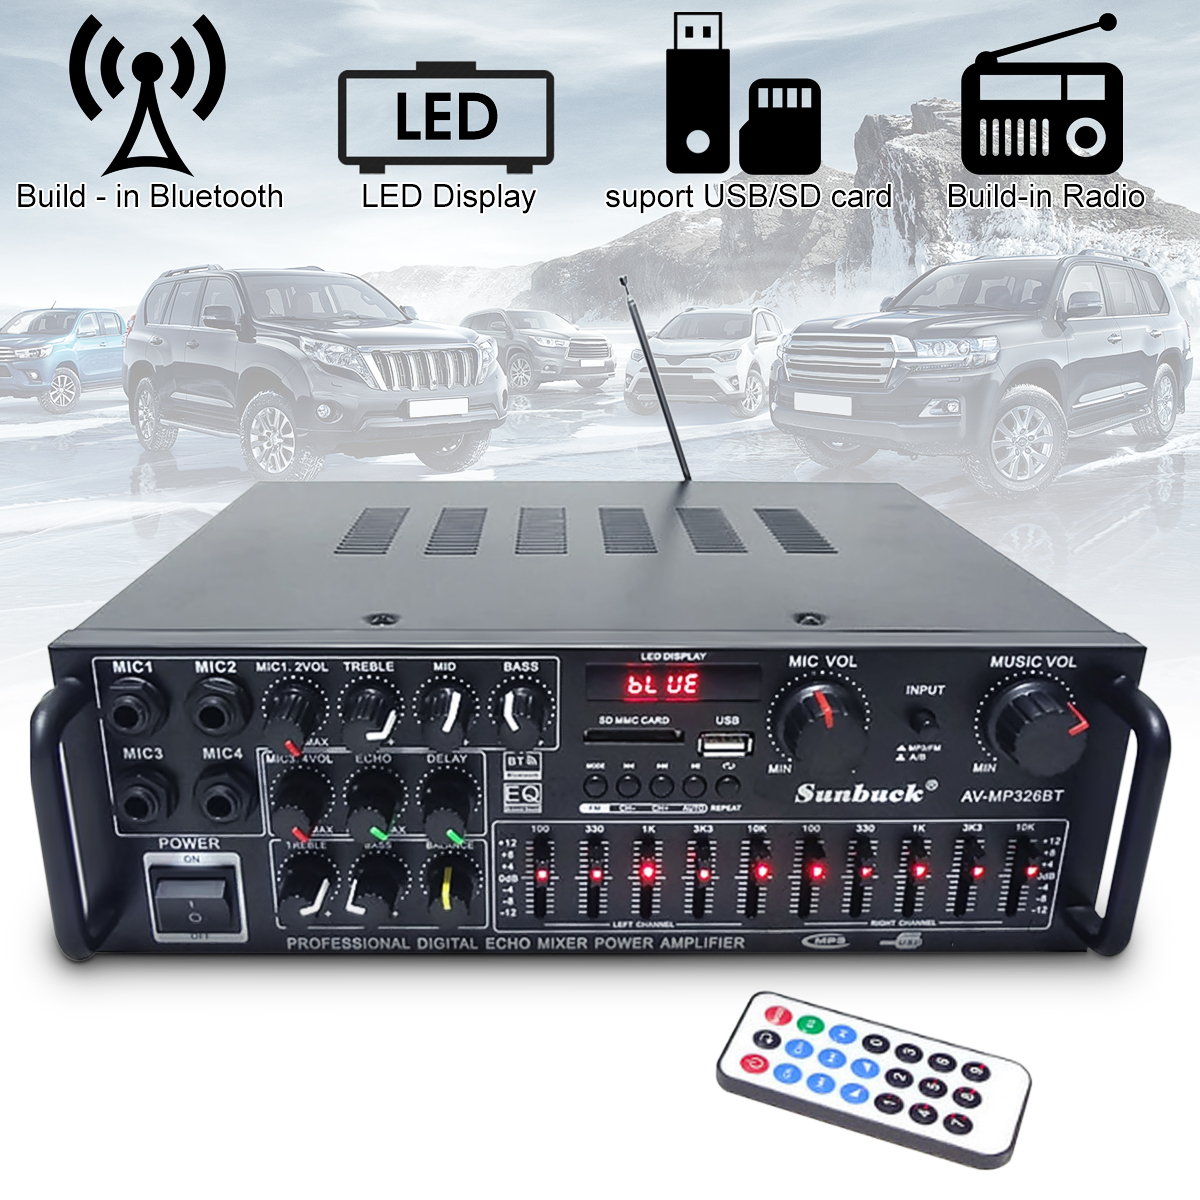 Universal220V Car Auto USB Bluetooth Stereo Digital Power Amplifier Hi-Fi Audio Power Amplifier 2-channel Car Amplifiers Audio 20w 20w hi fi audio amplifier 12v hi fi mini auto stereo audio amplifier support cd mp3 car power amplifier for car and home